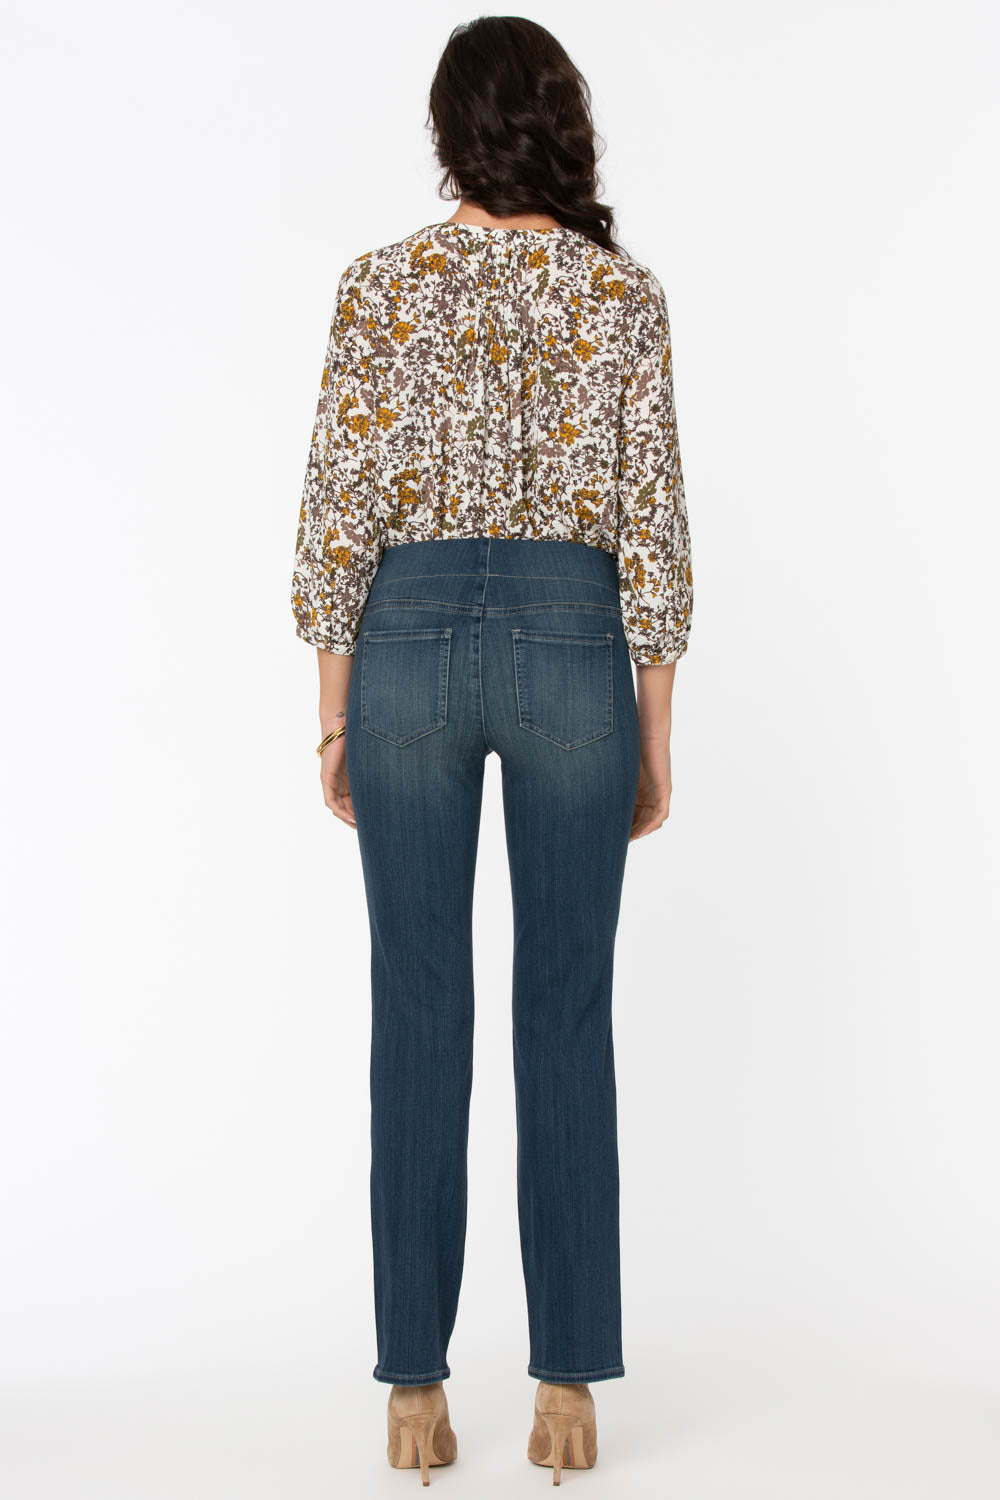 Marilyn Straight Pull-On Jeans - CLEAN BALANCE